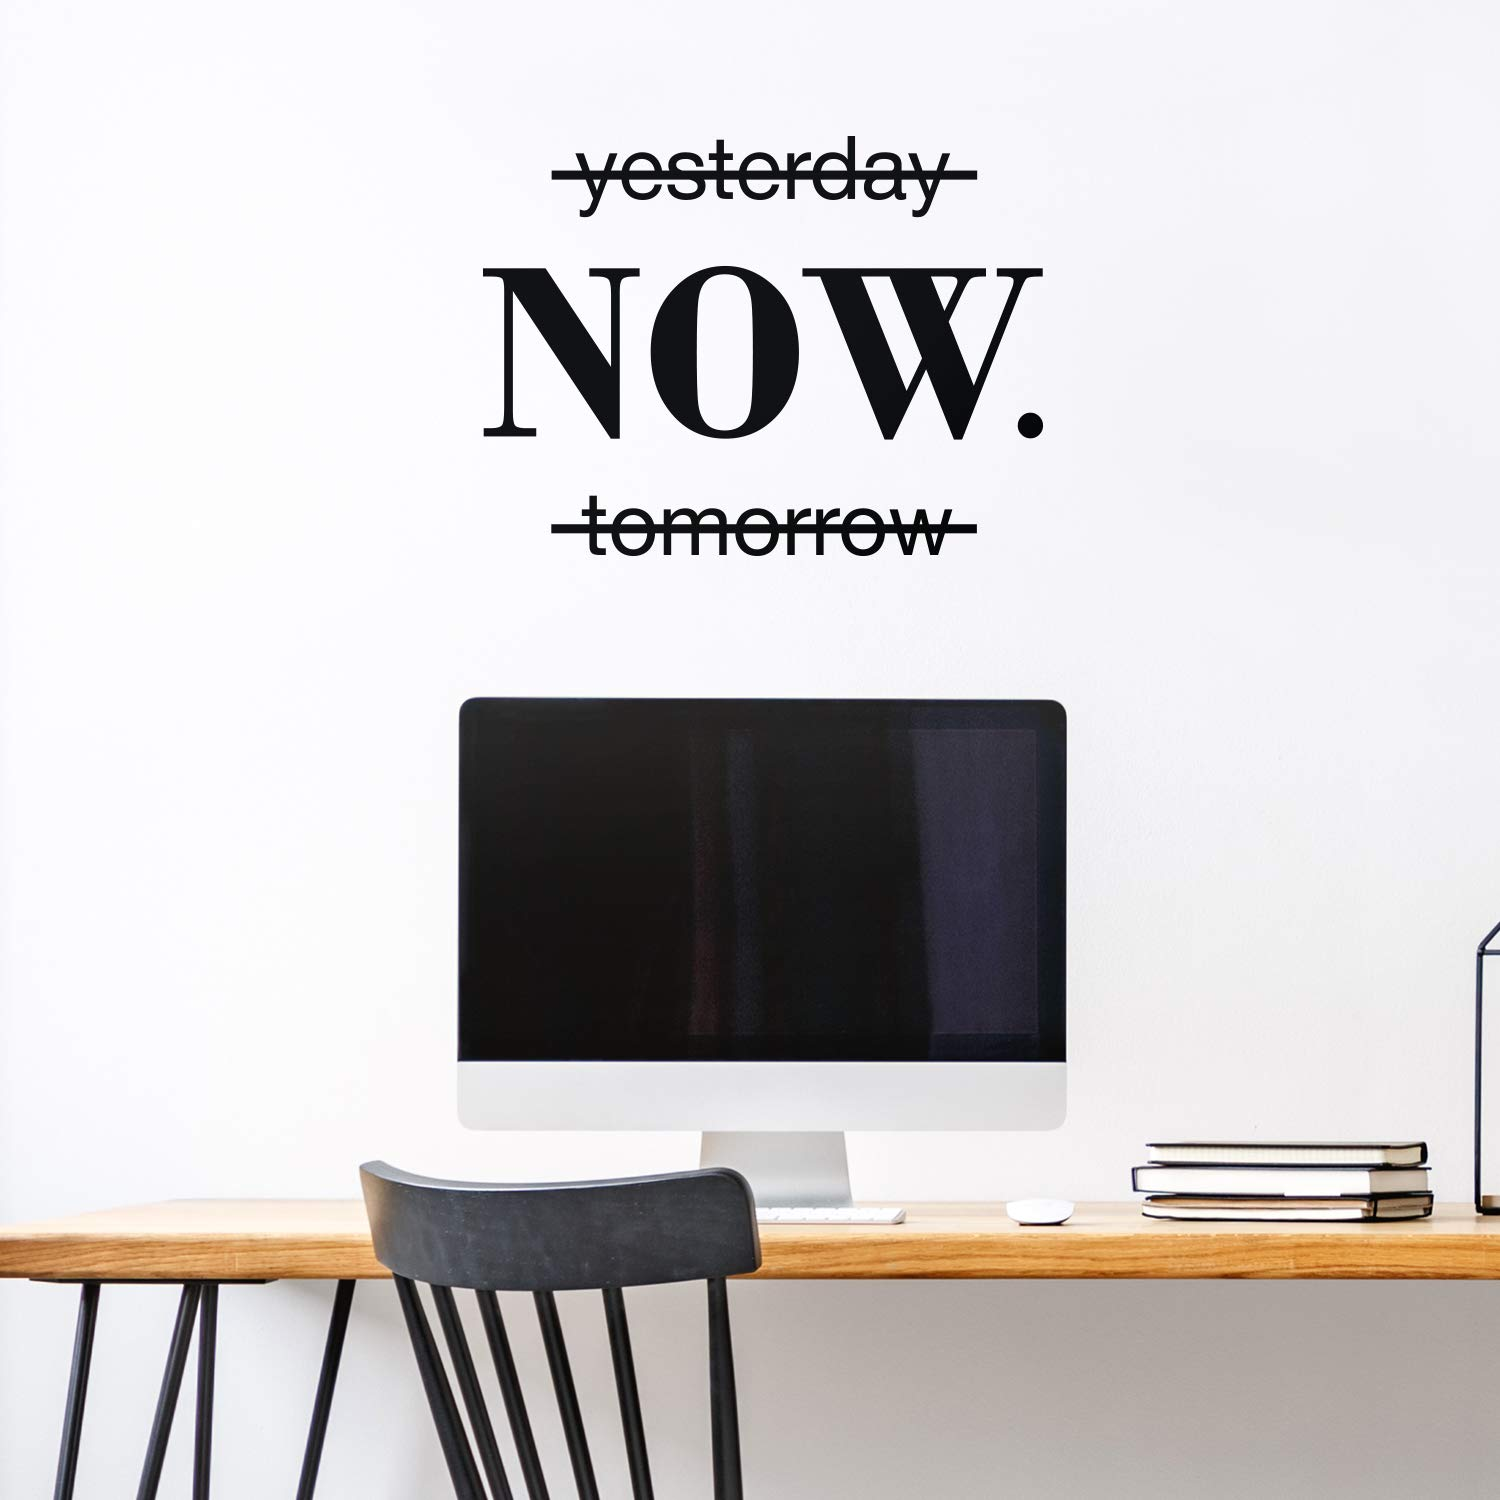 Now Quotes Motivational Sentence Wall Sticker Art Decals Office Wall Stickers For Kids Rooms Nursery Room Decoration Wallpaper